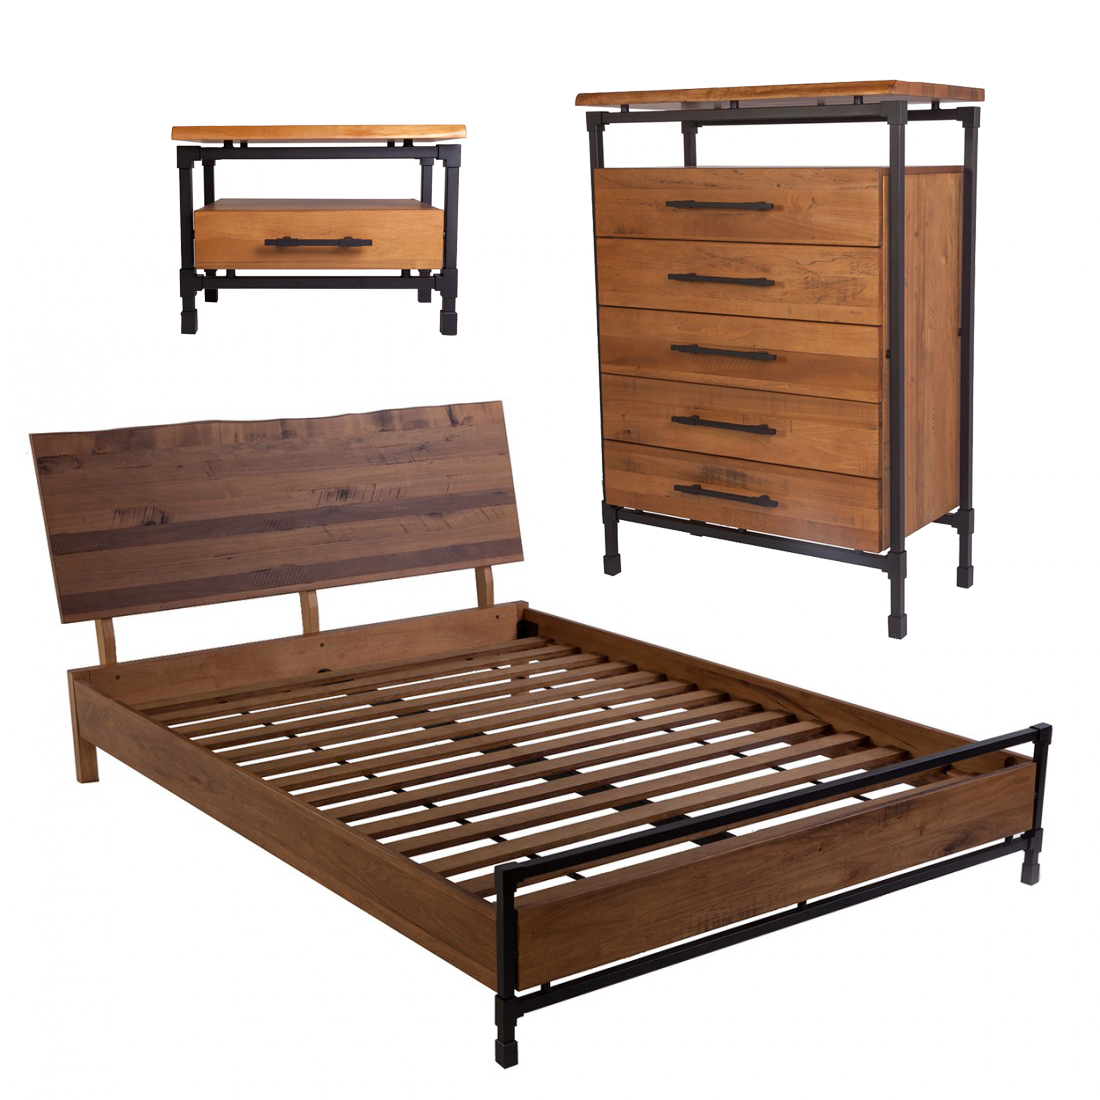 Ingen Bedroom Set - The Ingen Bedroom Set includes a Bed, Dresser ...